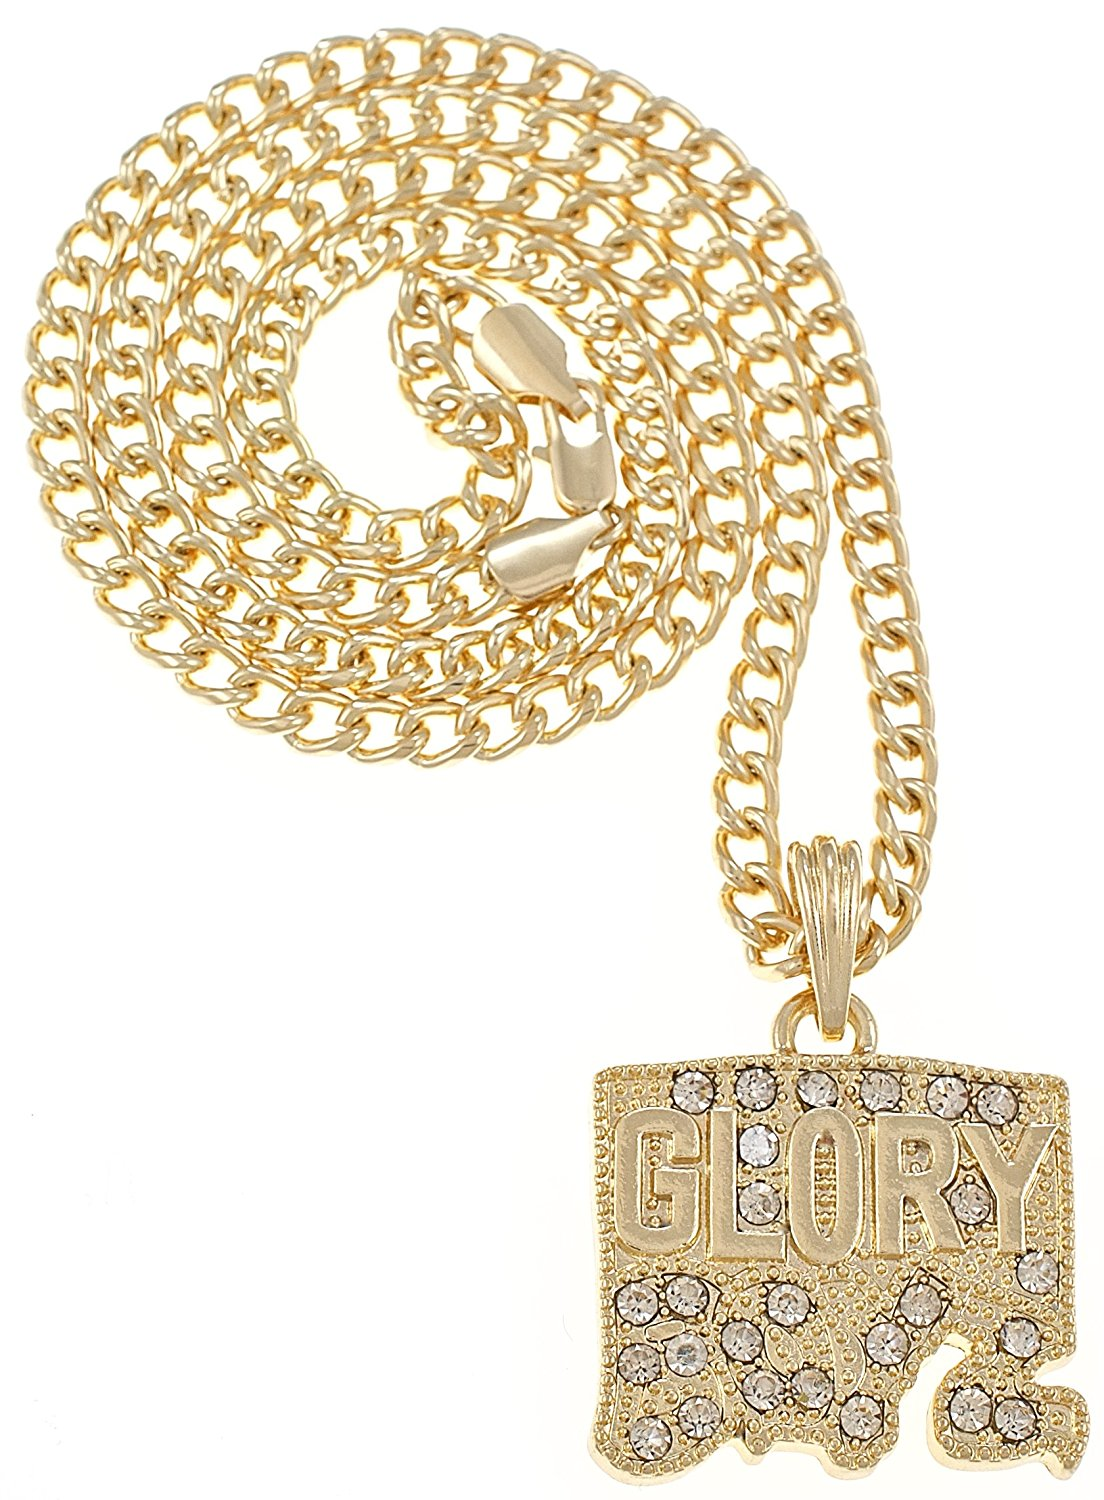 7d7fbf9492d GWOOD Glory Boyz Gold Color Iced Out Pendant 24 Inch Cuban Link Necklace